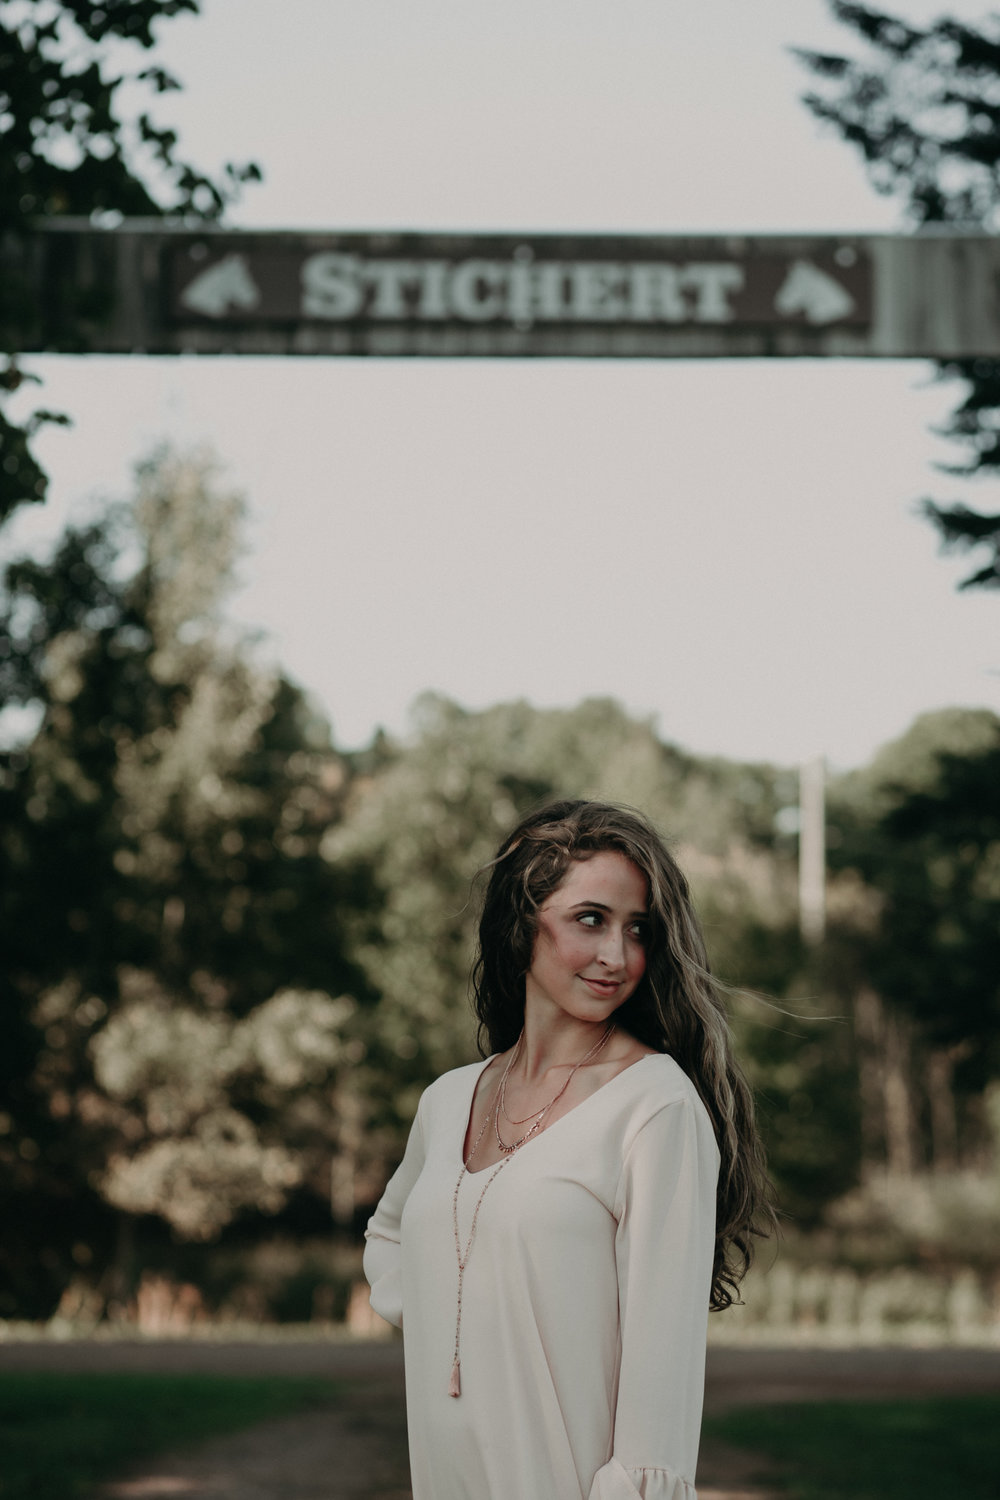 Andrea Wagner Photography specializes in senior portraits in Chili Wi on Stichert Farms